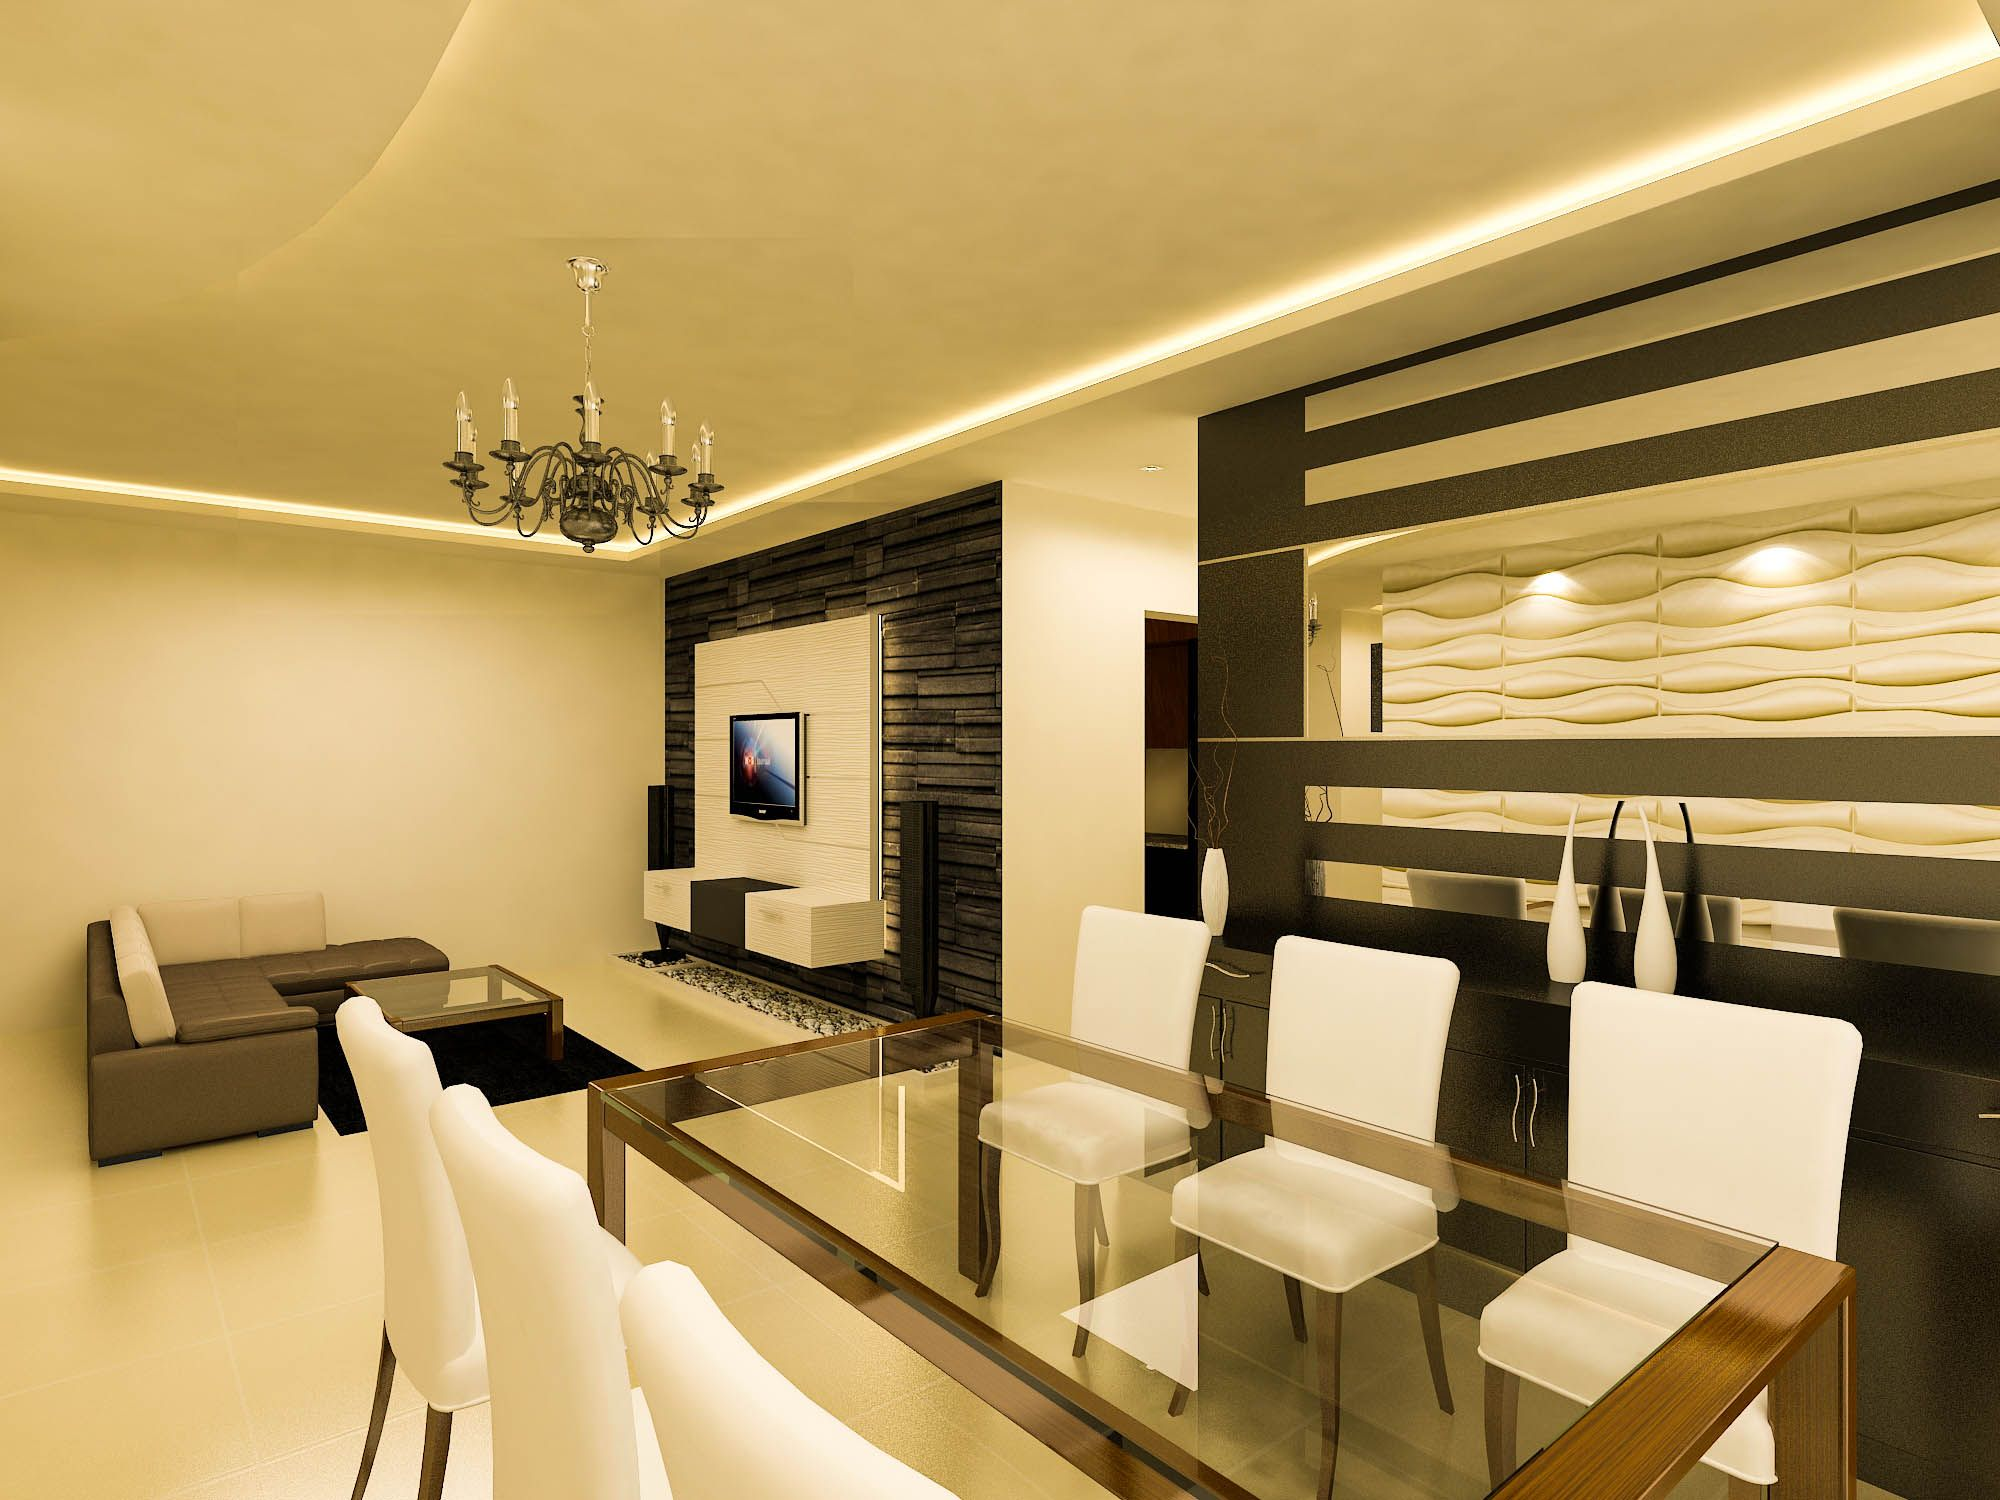 Living Room Designs For Apartments Amazing A Living Room Design For The Sobha Classic Apartment In Bangalore Inspiration